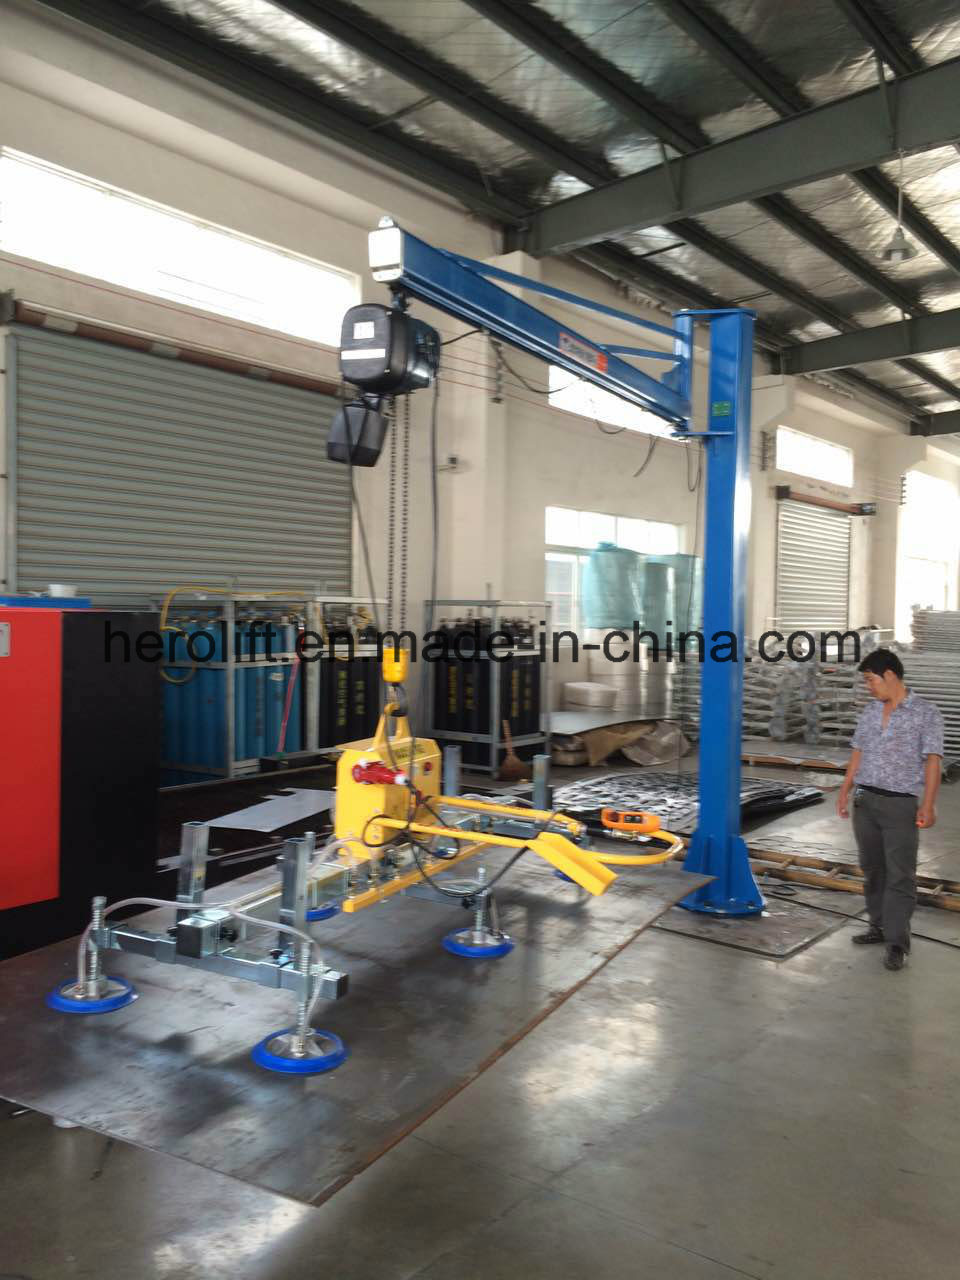 Stailess Steel Sheet Vacuum Lifter/Ss Sheet Lifter